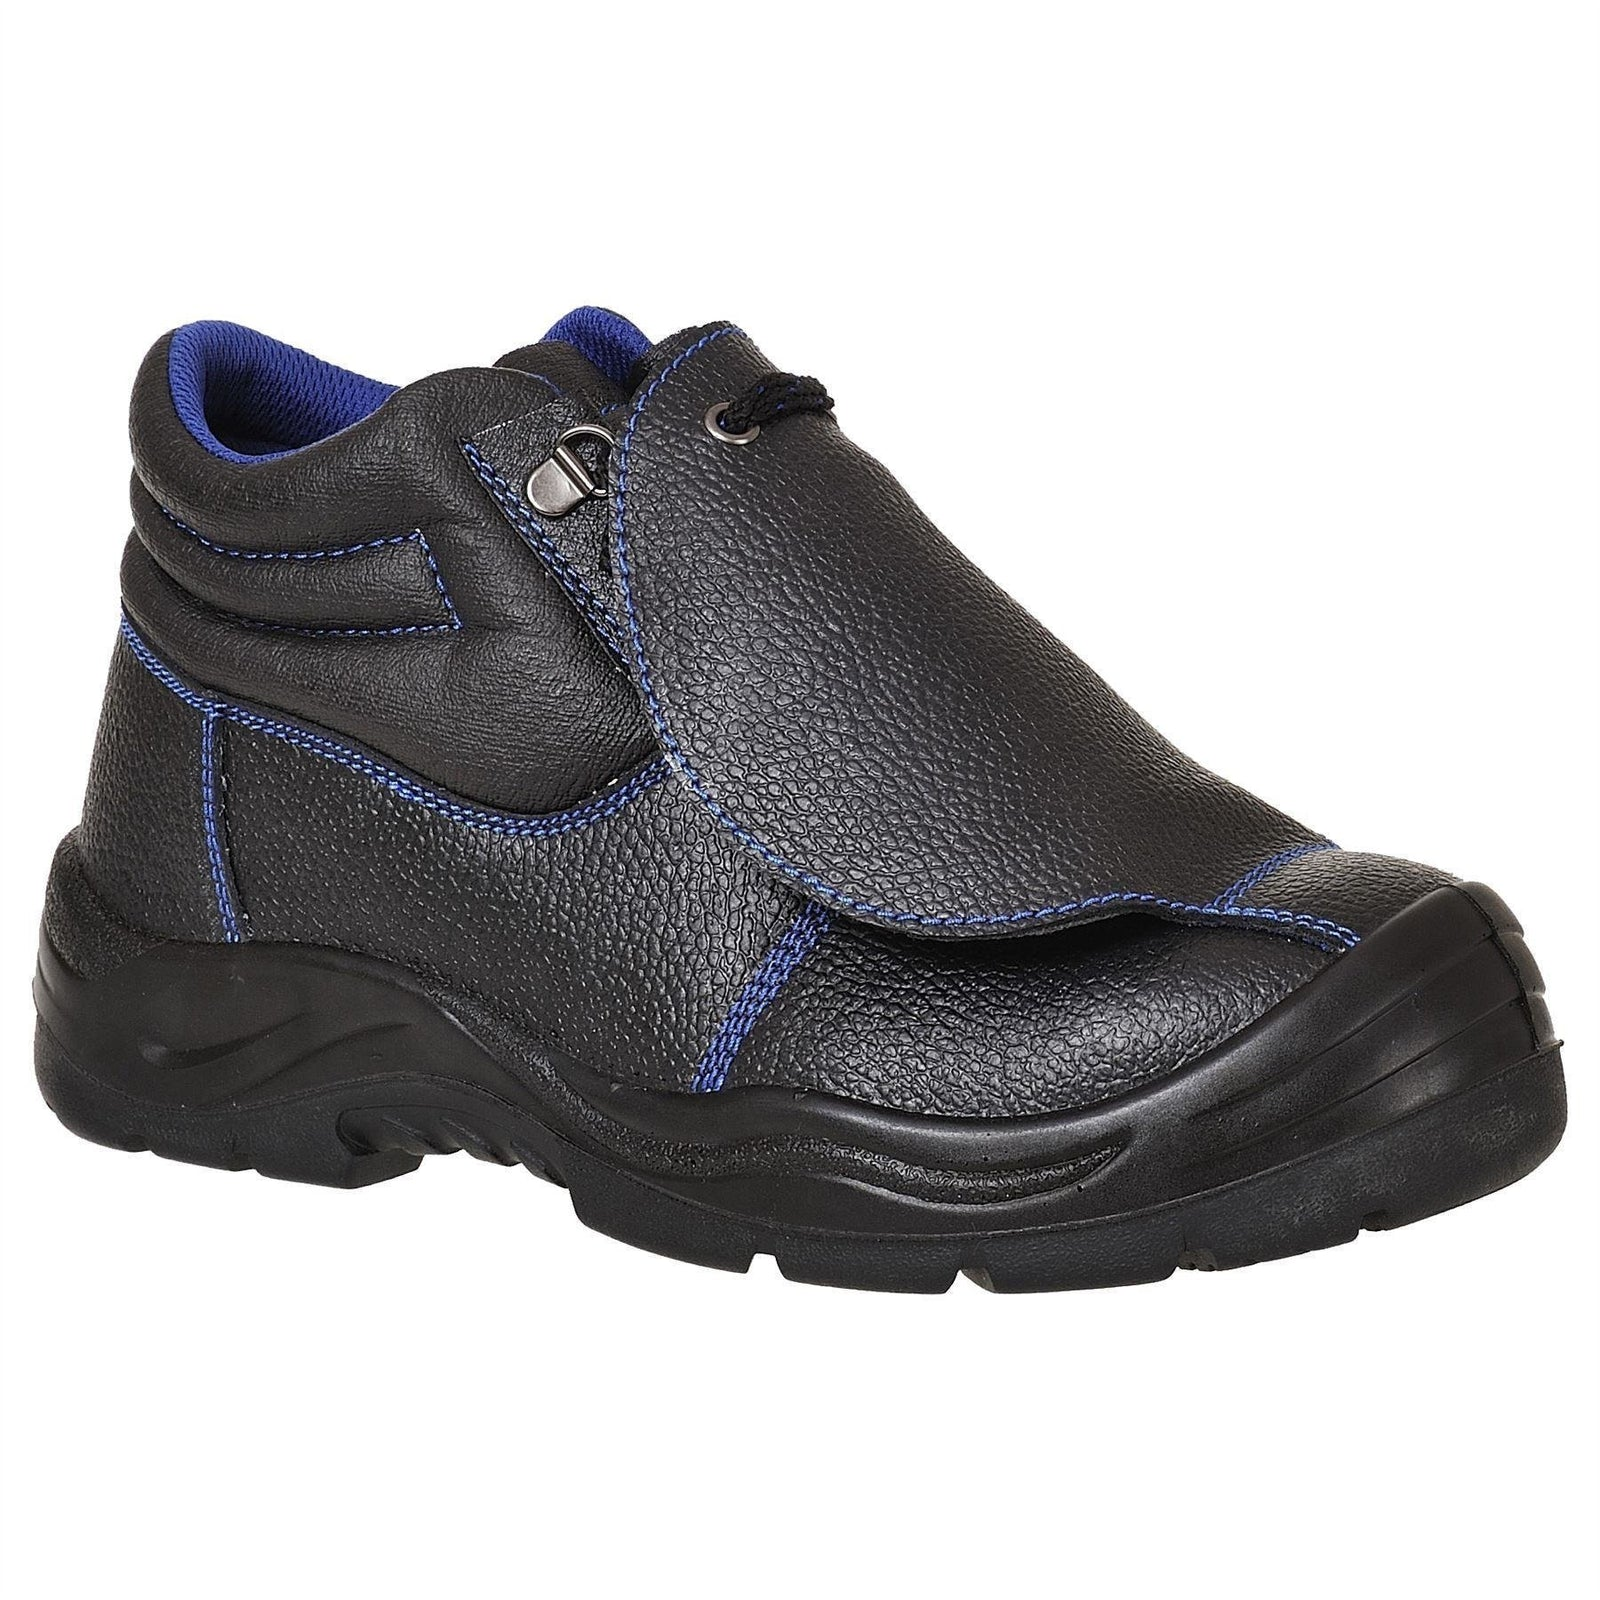 Portwest Steelite Metatarsal Boot S3 HRO M FW22 - reid outdoors